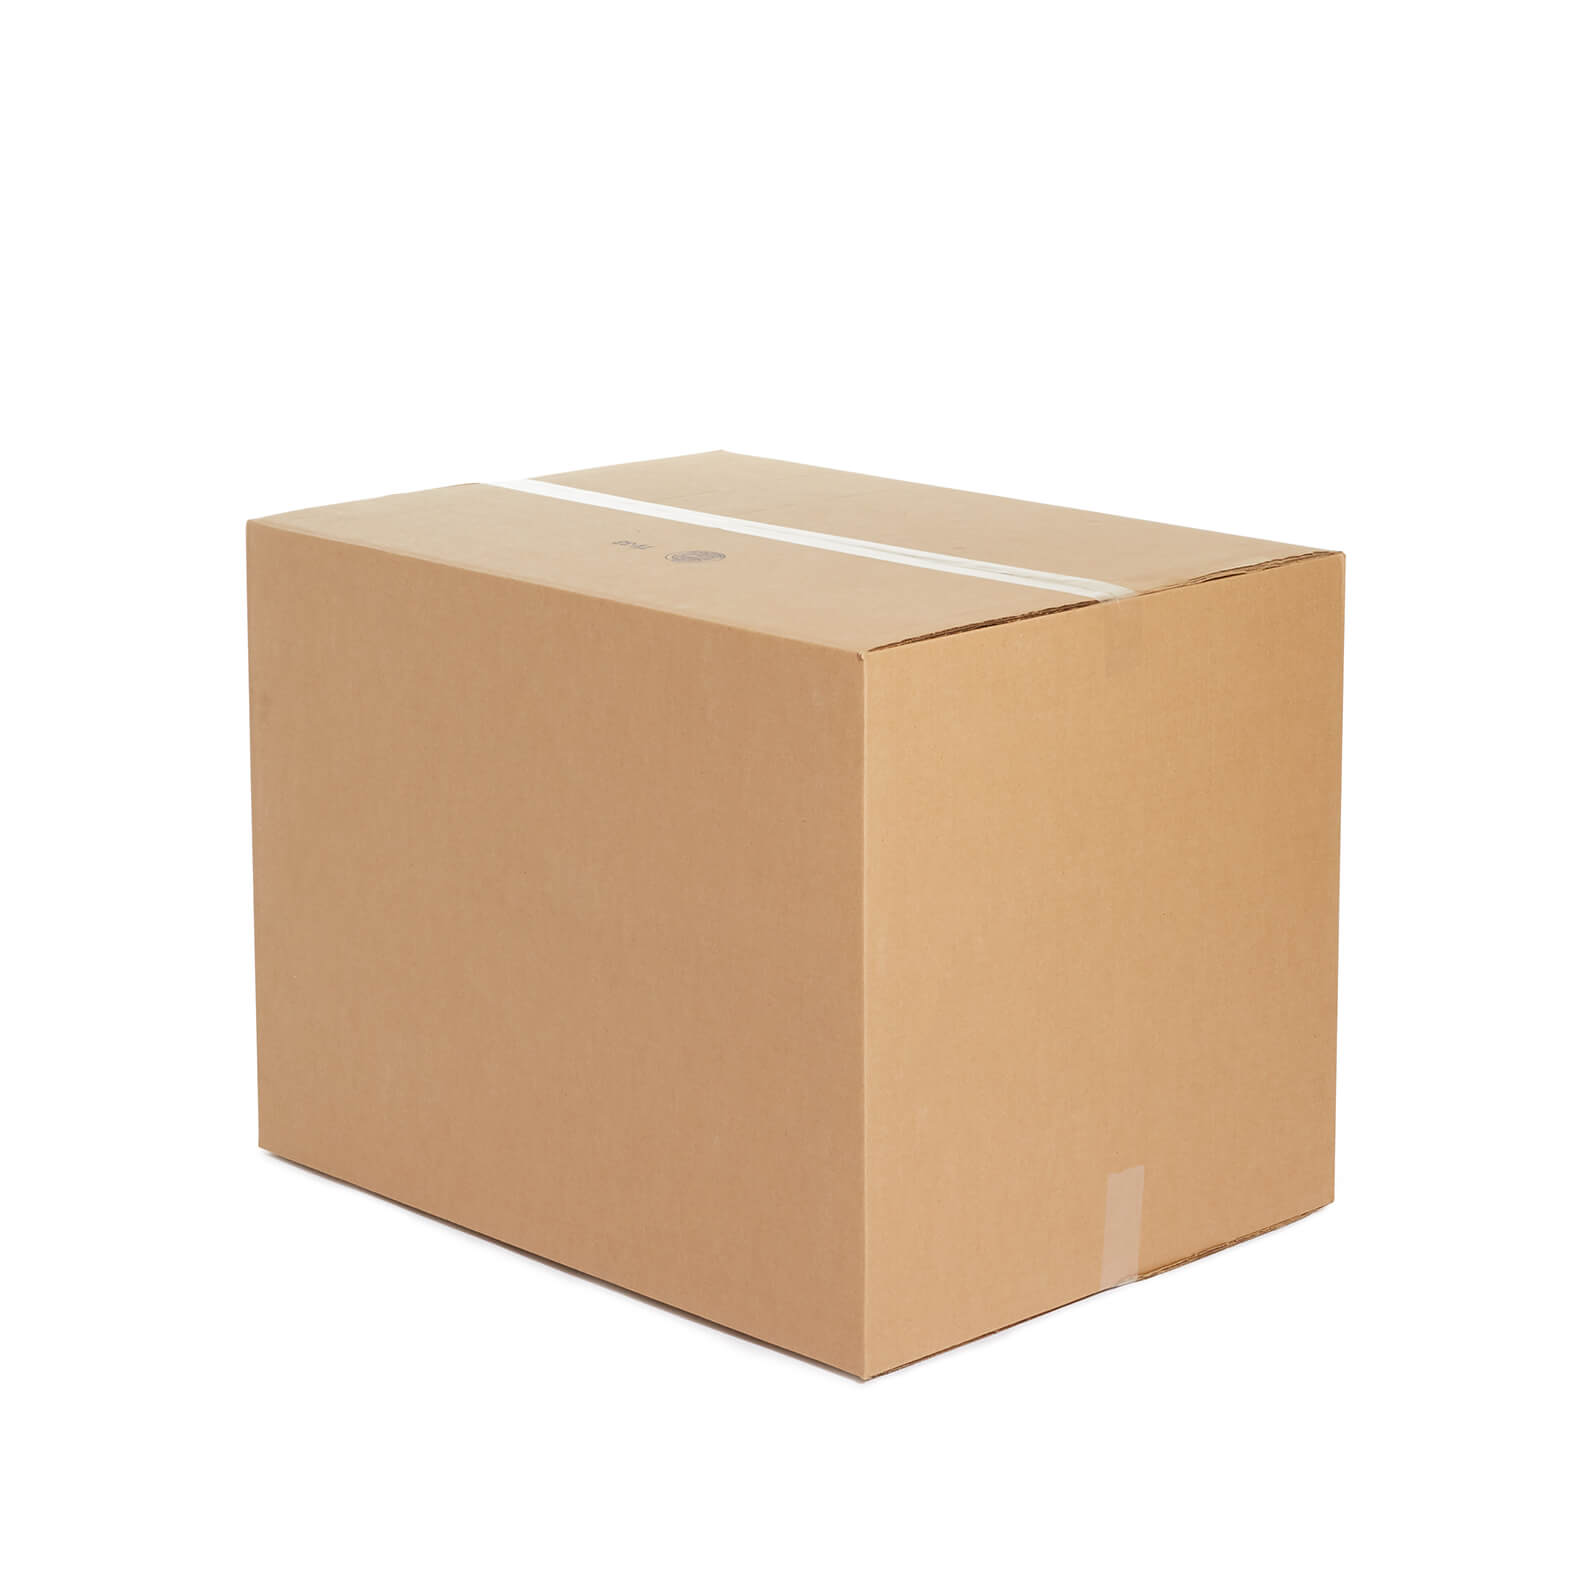 Extra Large Double Walled Box- 33″ x 24″ x 24″